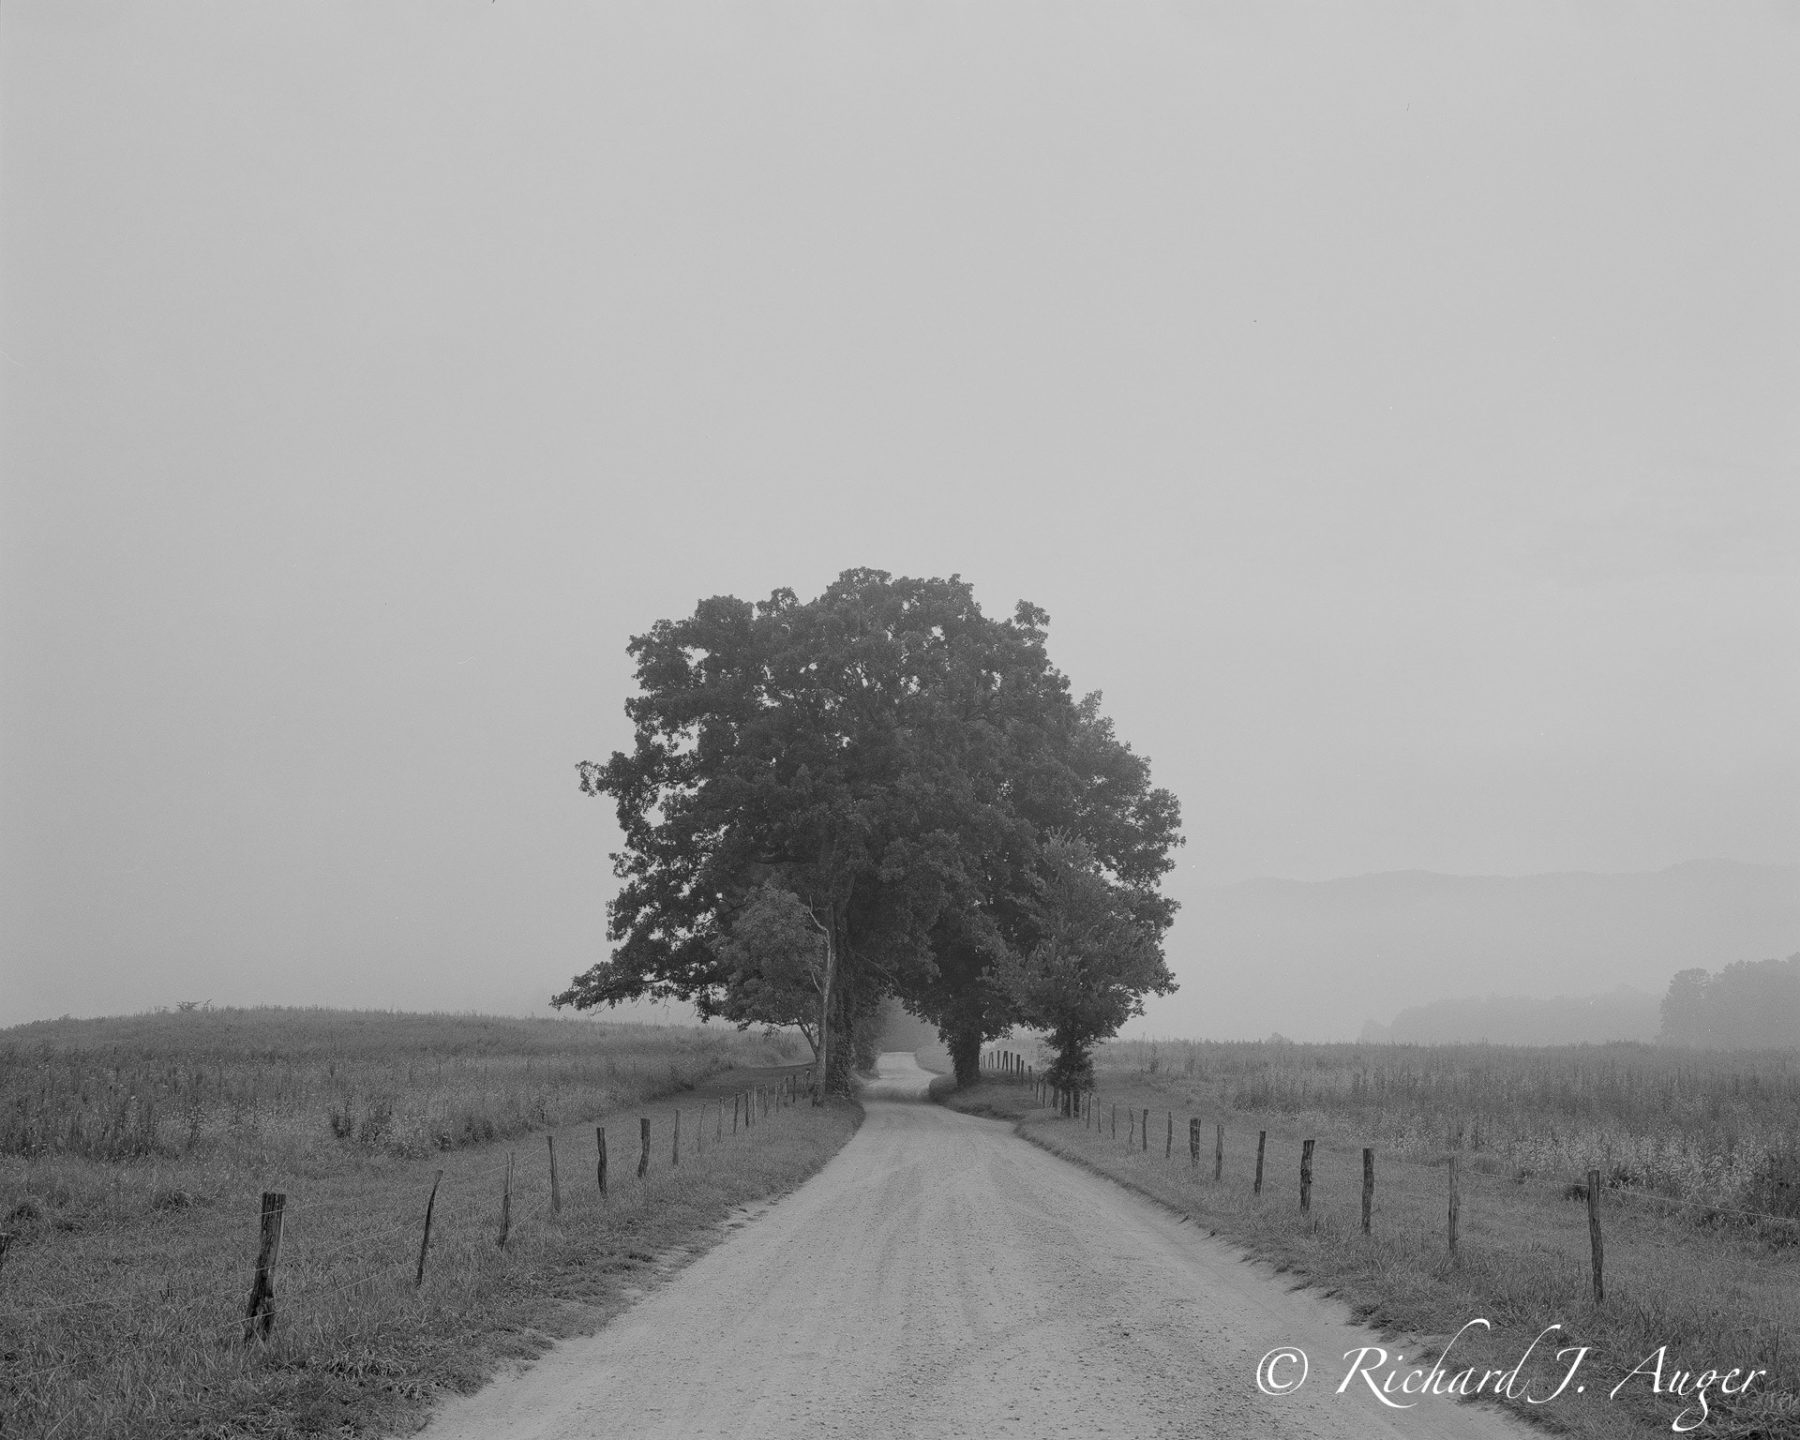 Smoky Mountains, Scenic Road, Black and White, Photograph, fog